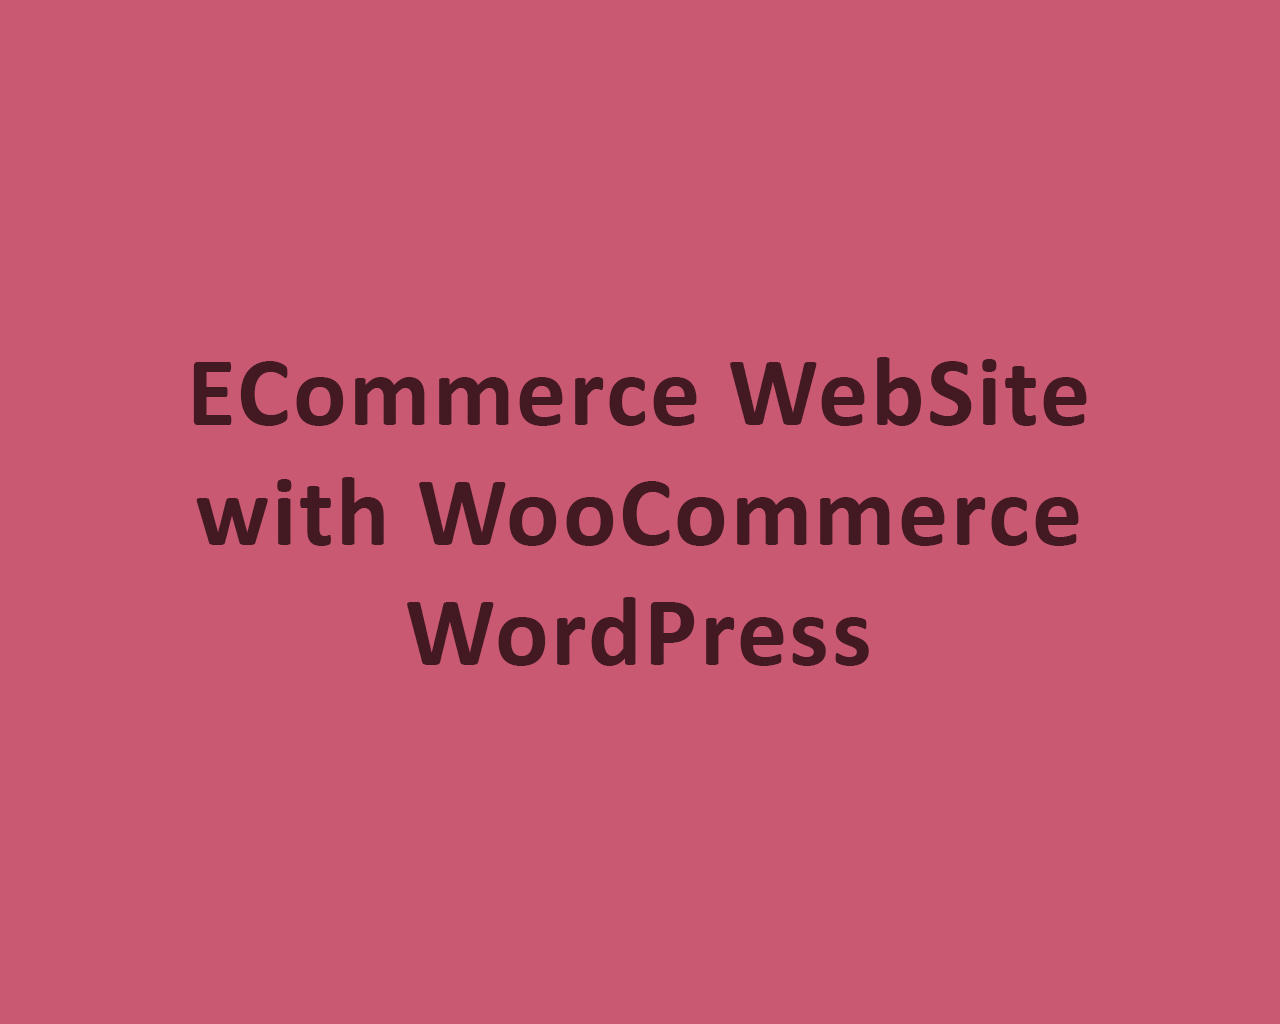 ECommerce WebSite with WooCommerce / WordPress by odiusfly - 105967